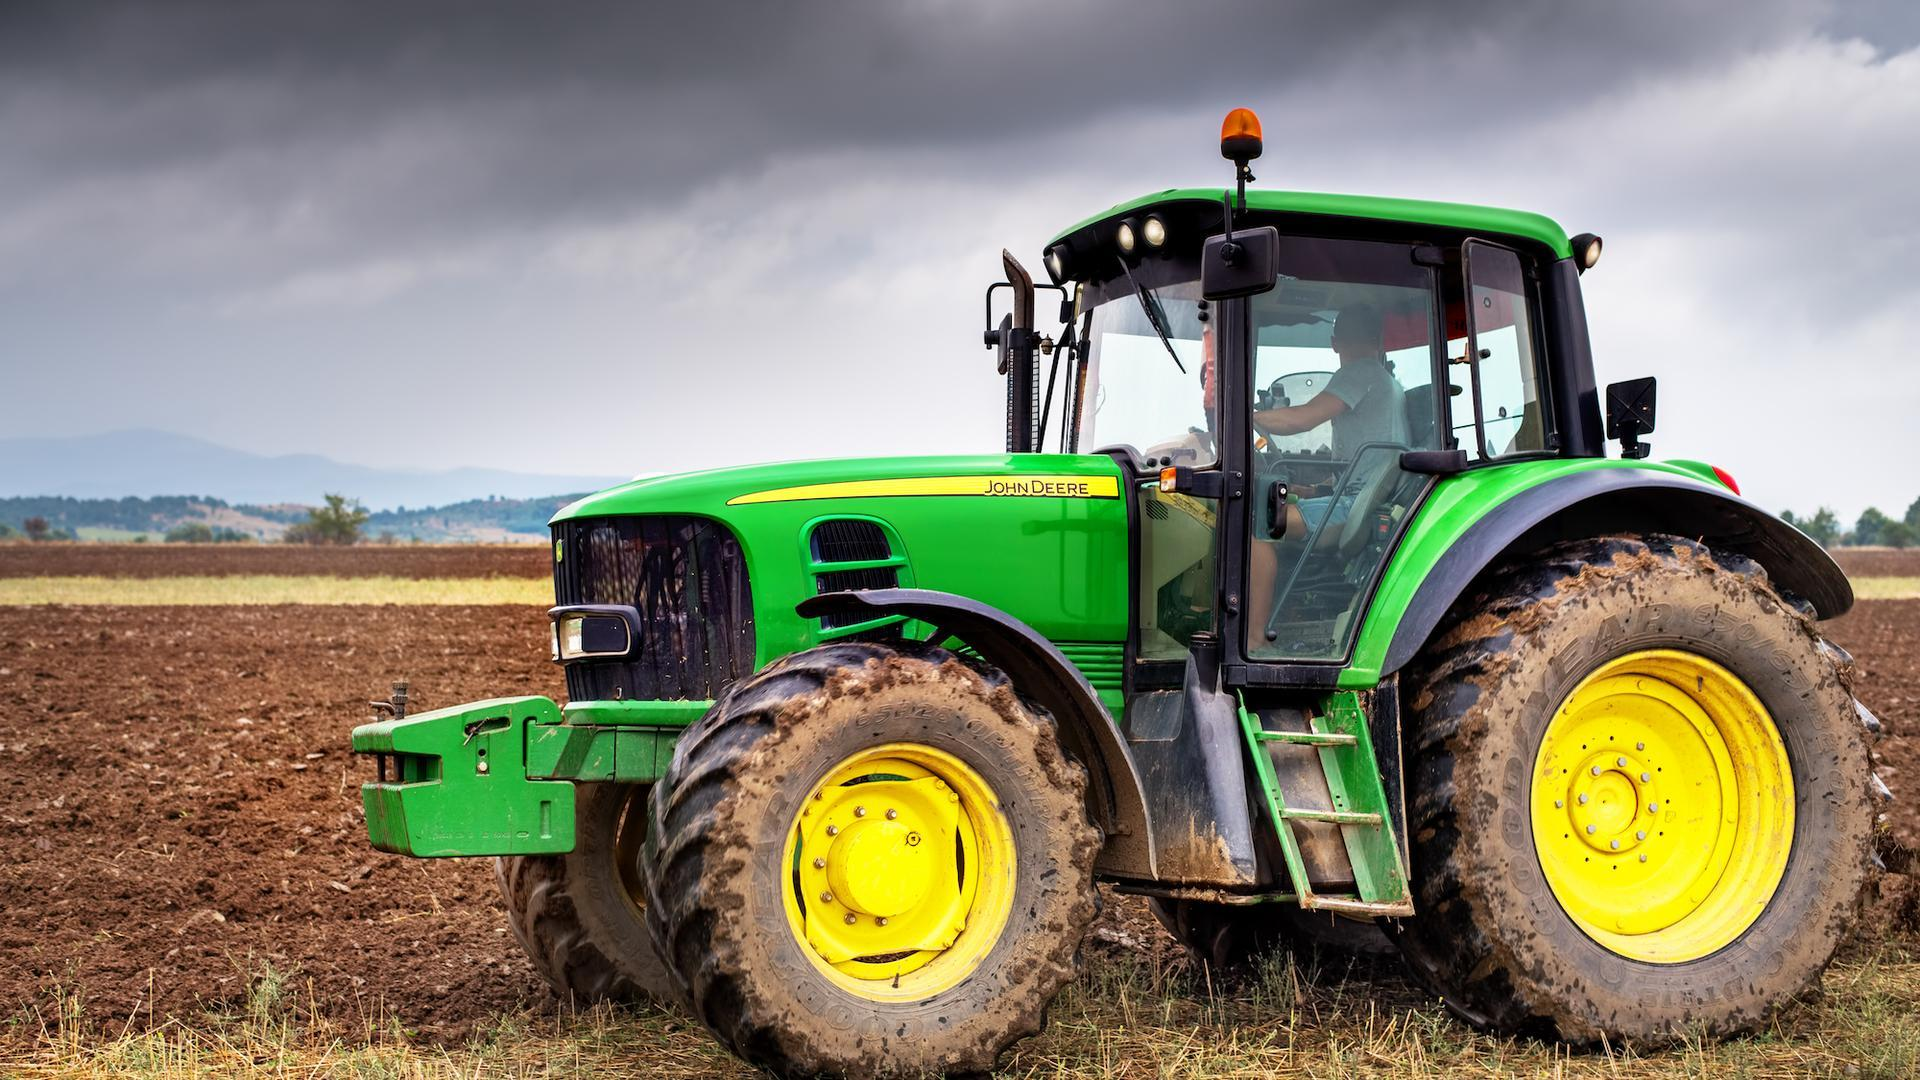 john deere marketing mix Look critically at your marketing from the eyes of your customer would you want to get a product pitch or do you want to be educated to be better informed.